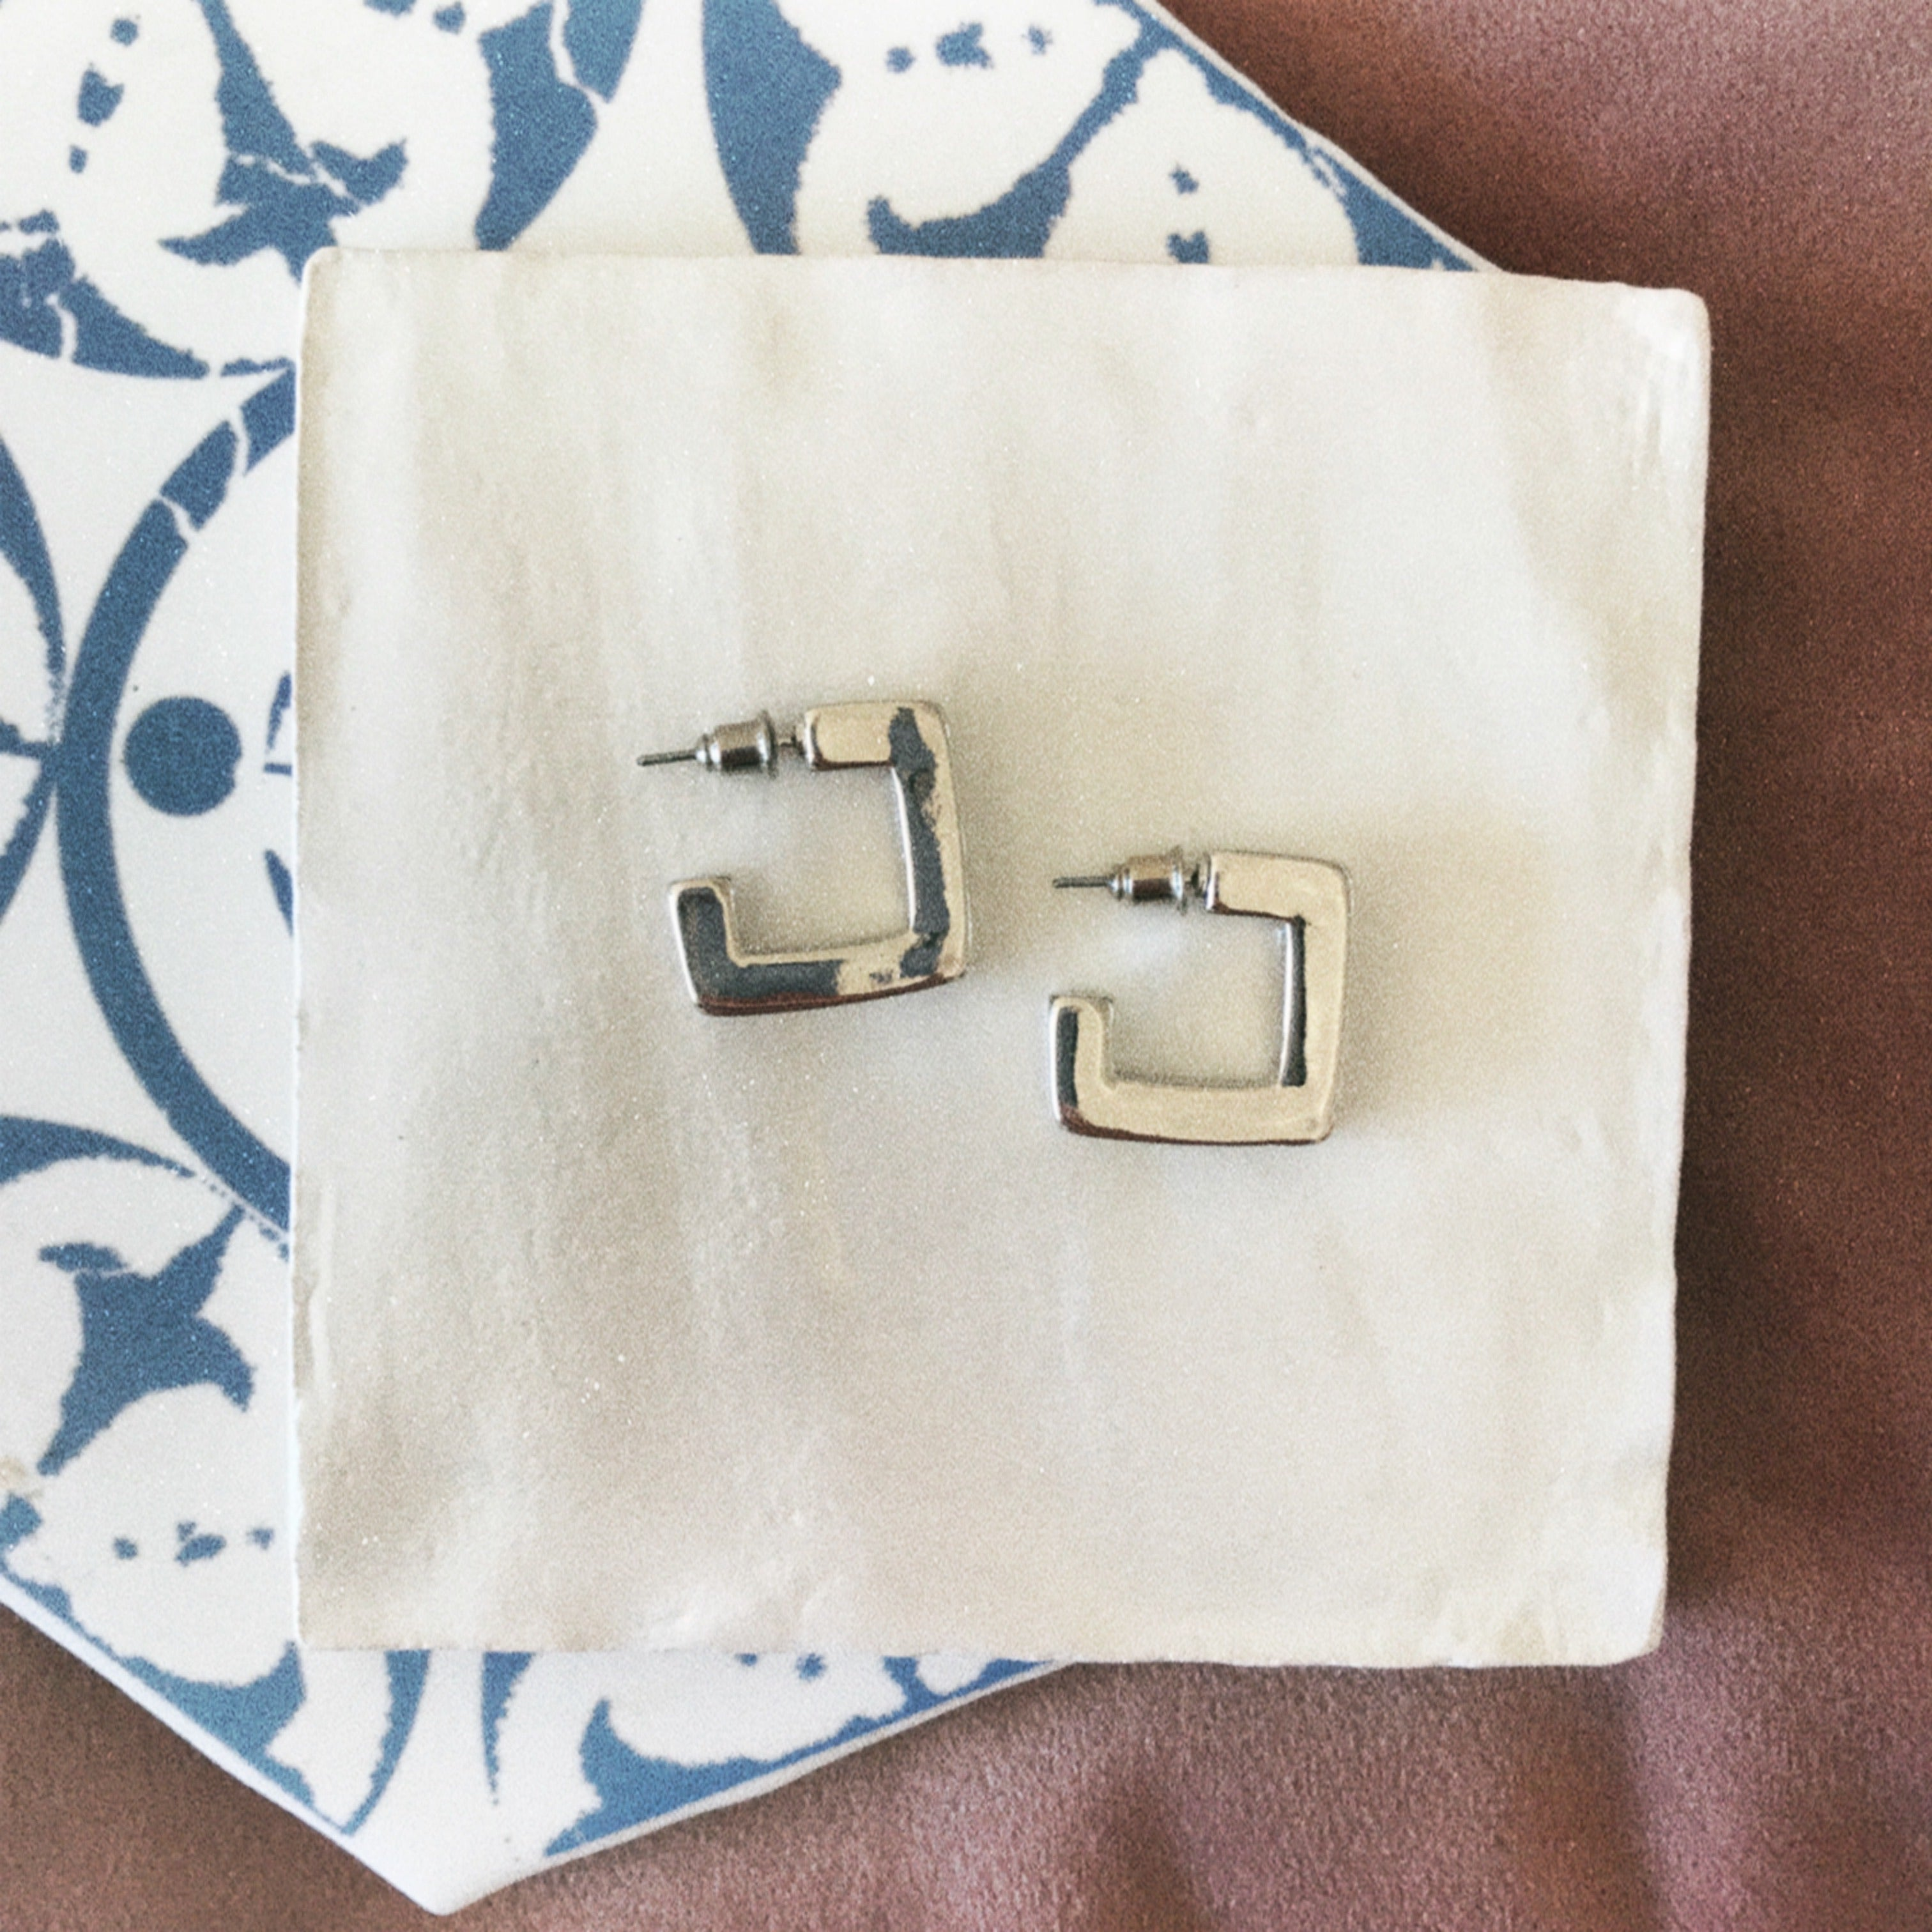 Nordic Muse Thick Square Hoop Earring, Silver